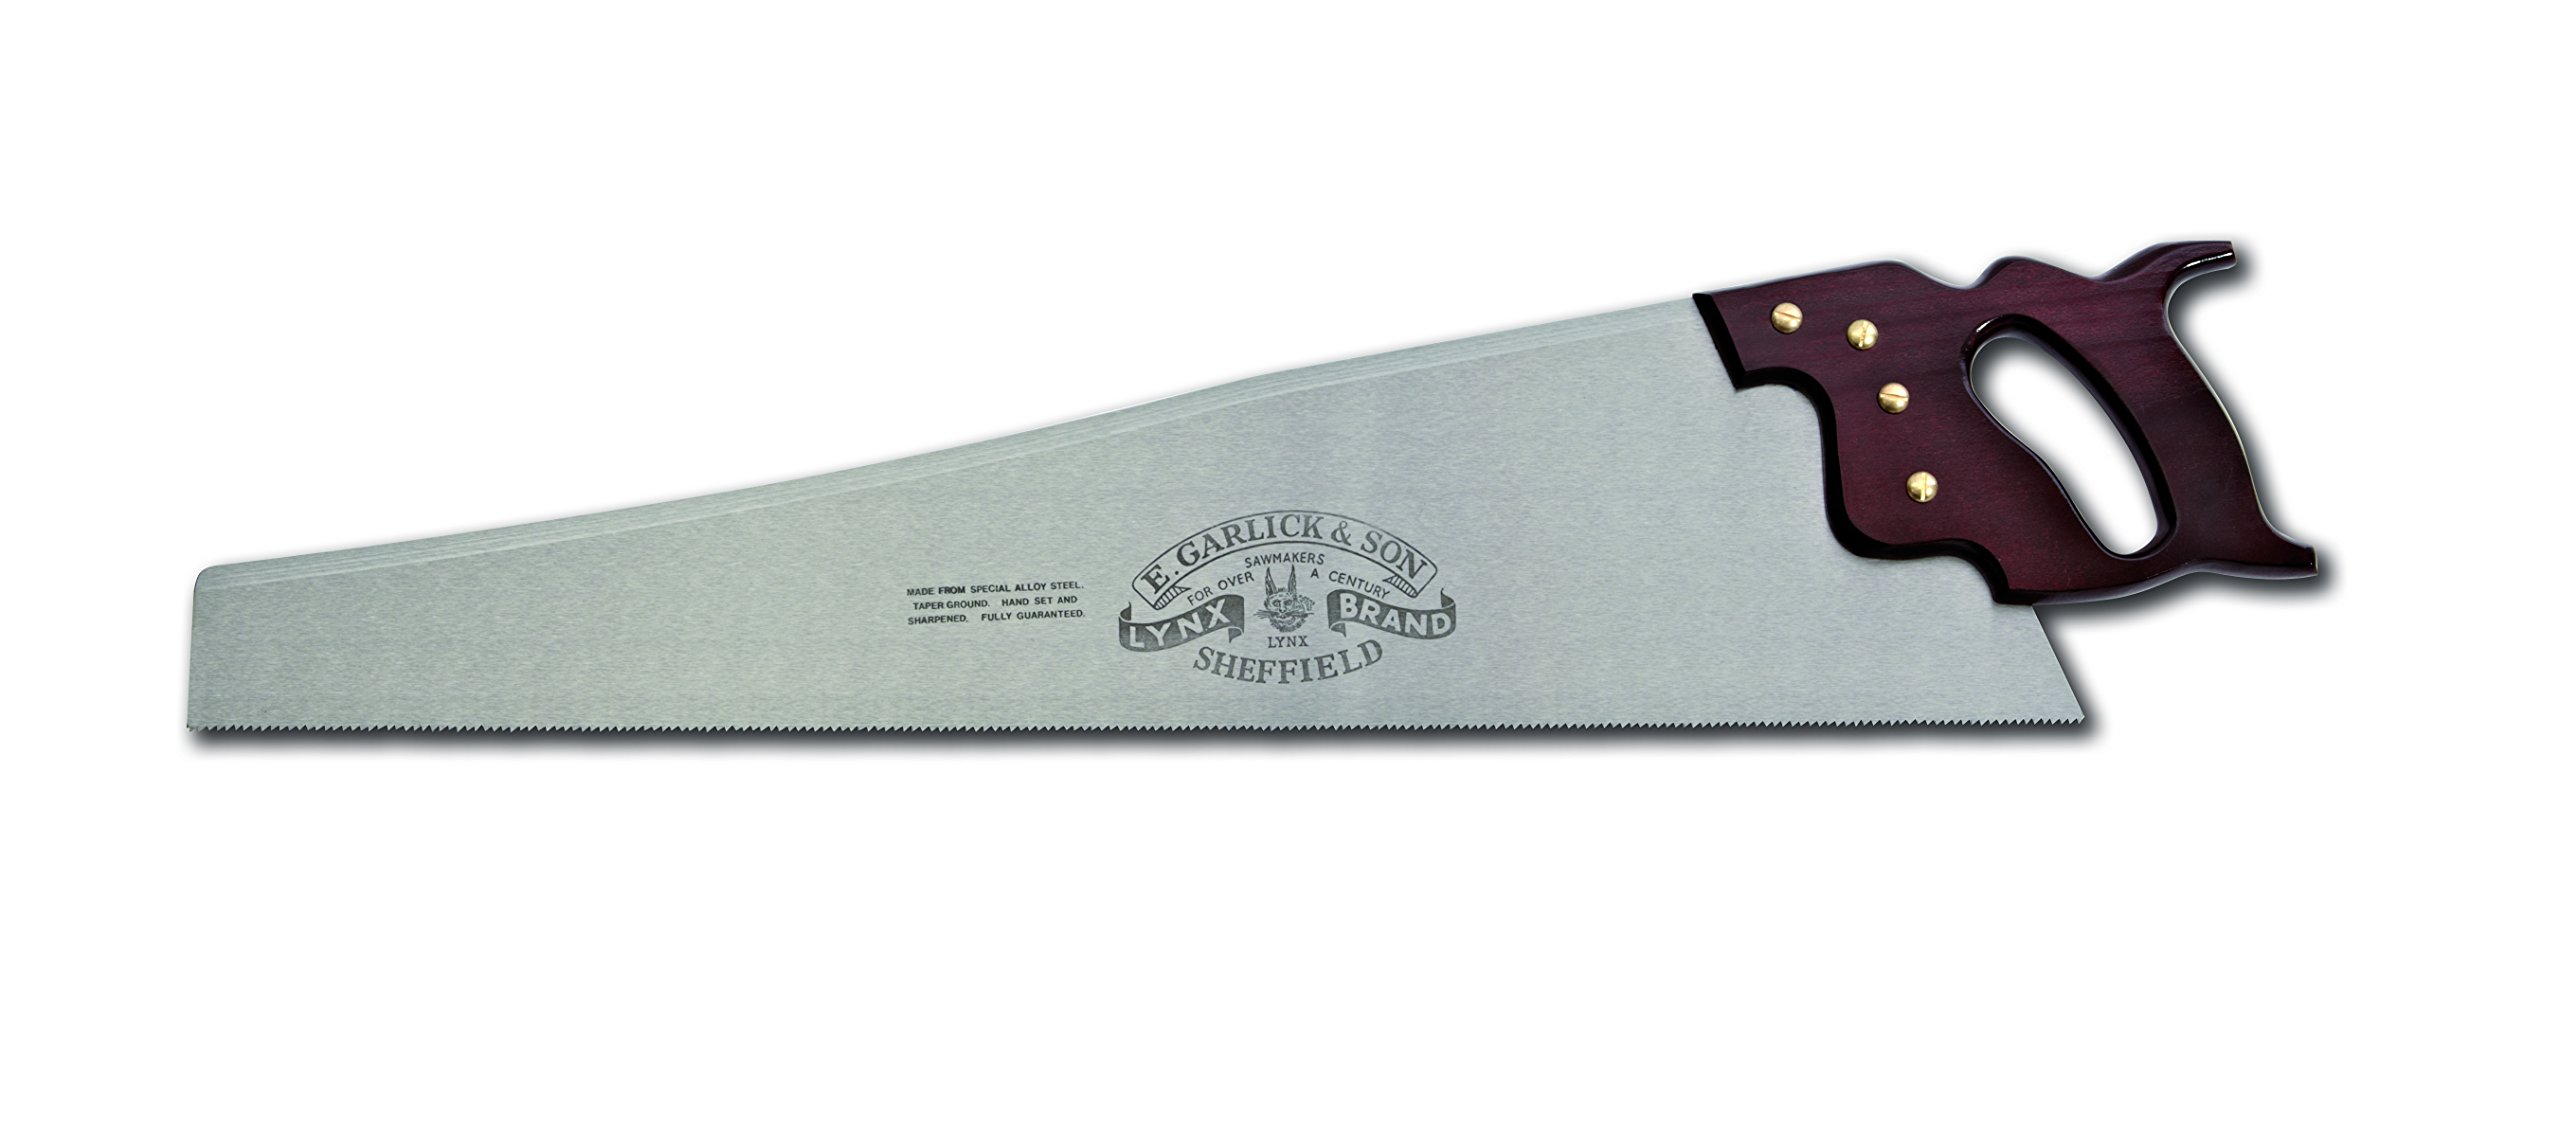 Lynx 26-Inch Hand Saw Filed for Rip Cutting (4.5 TPI) with Taper Ground Blade and Stained Beech Handle